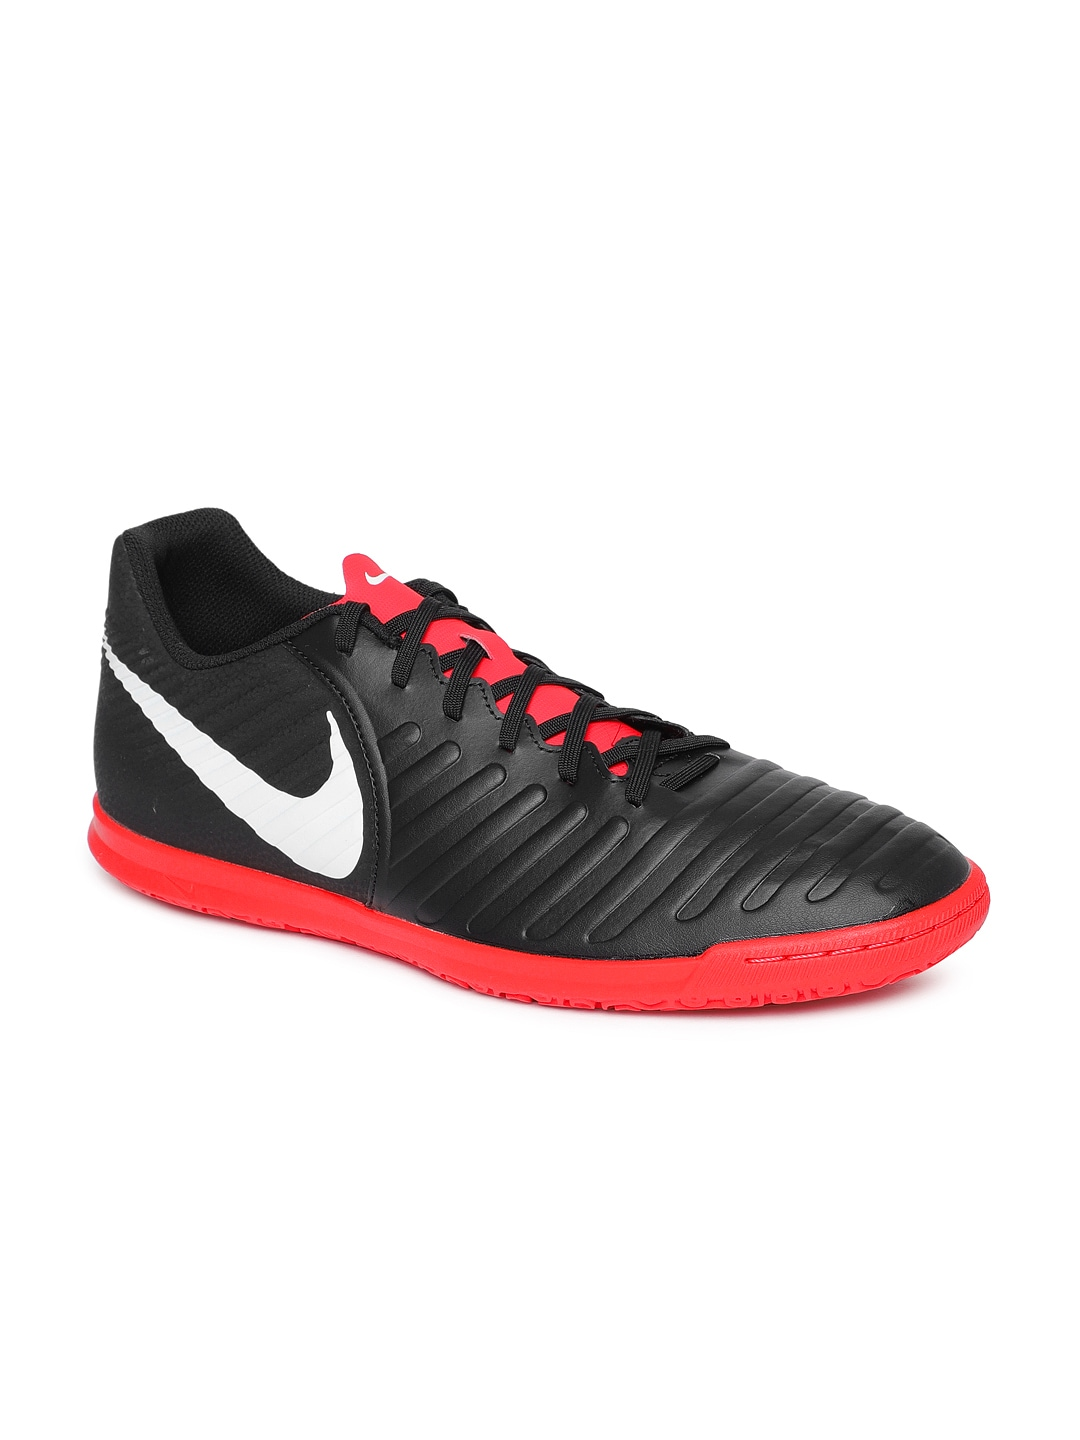 timeless design b8662 8f609 Nike Shoes - Buy Nike Shoes for Men, Women   Kids Online   Myntra